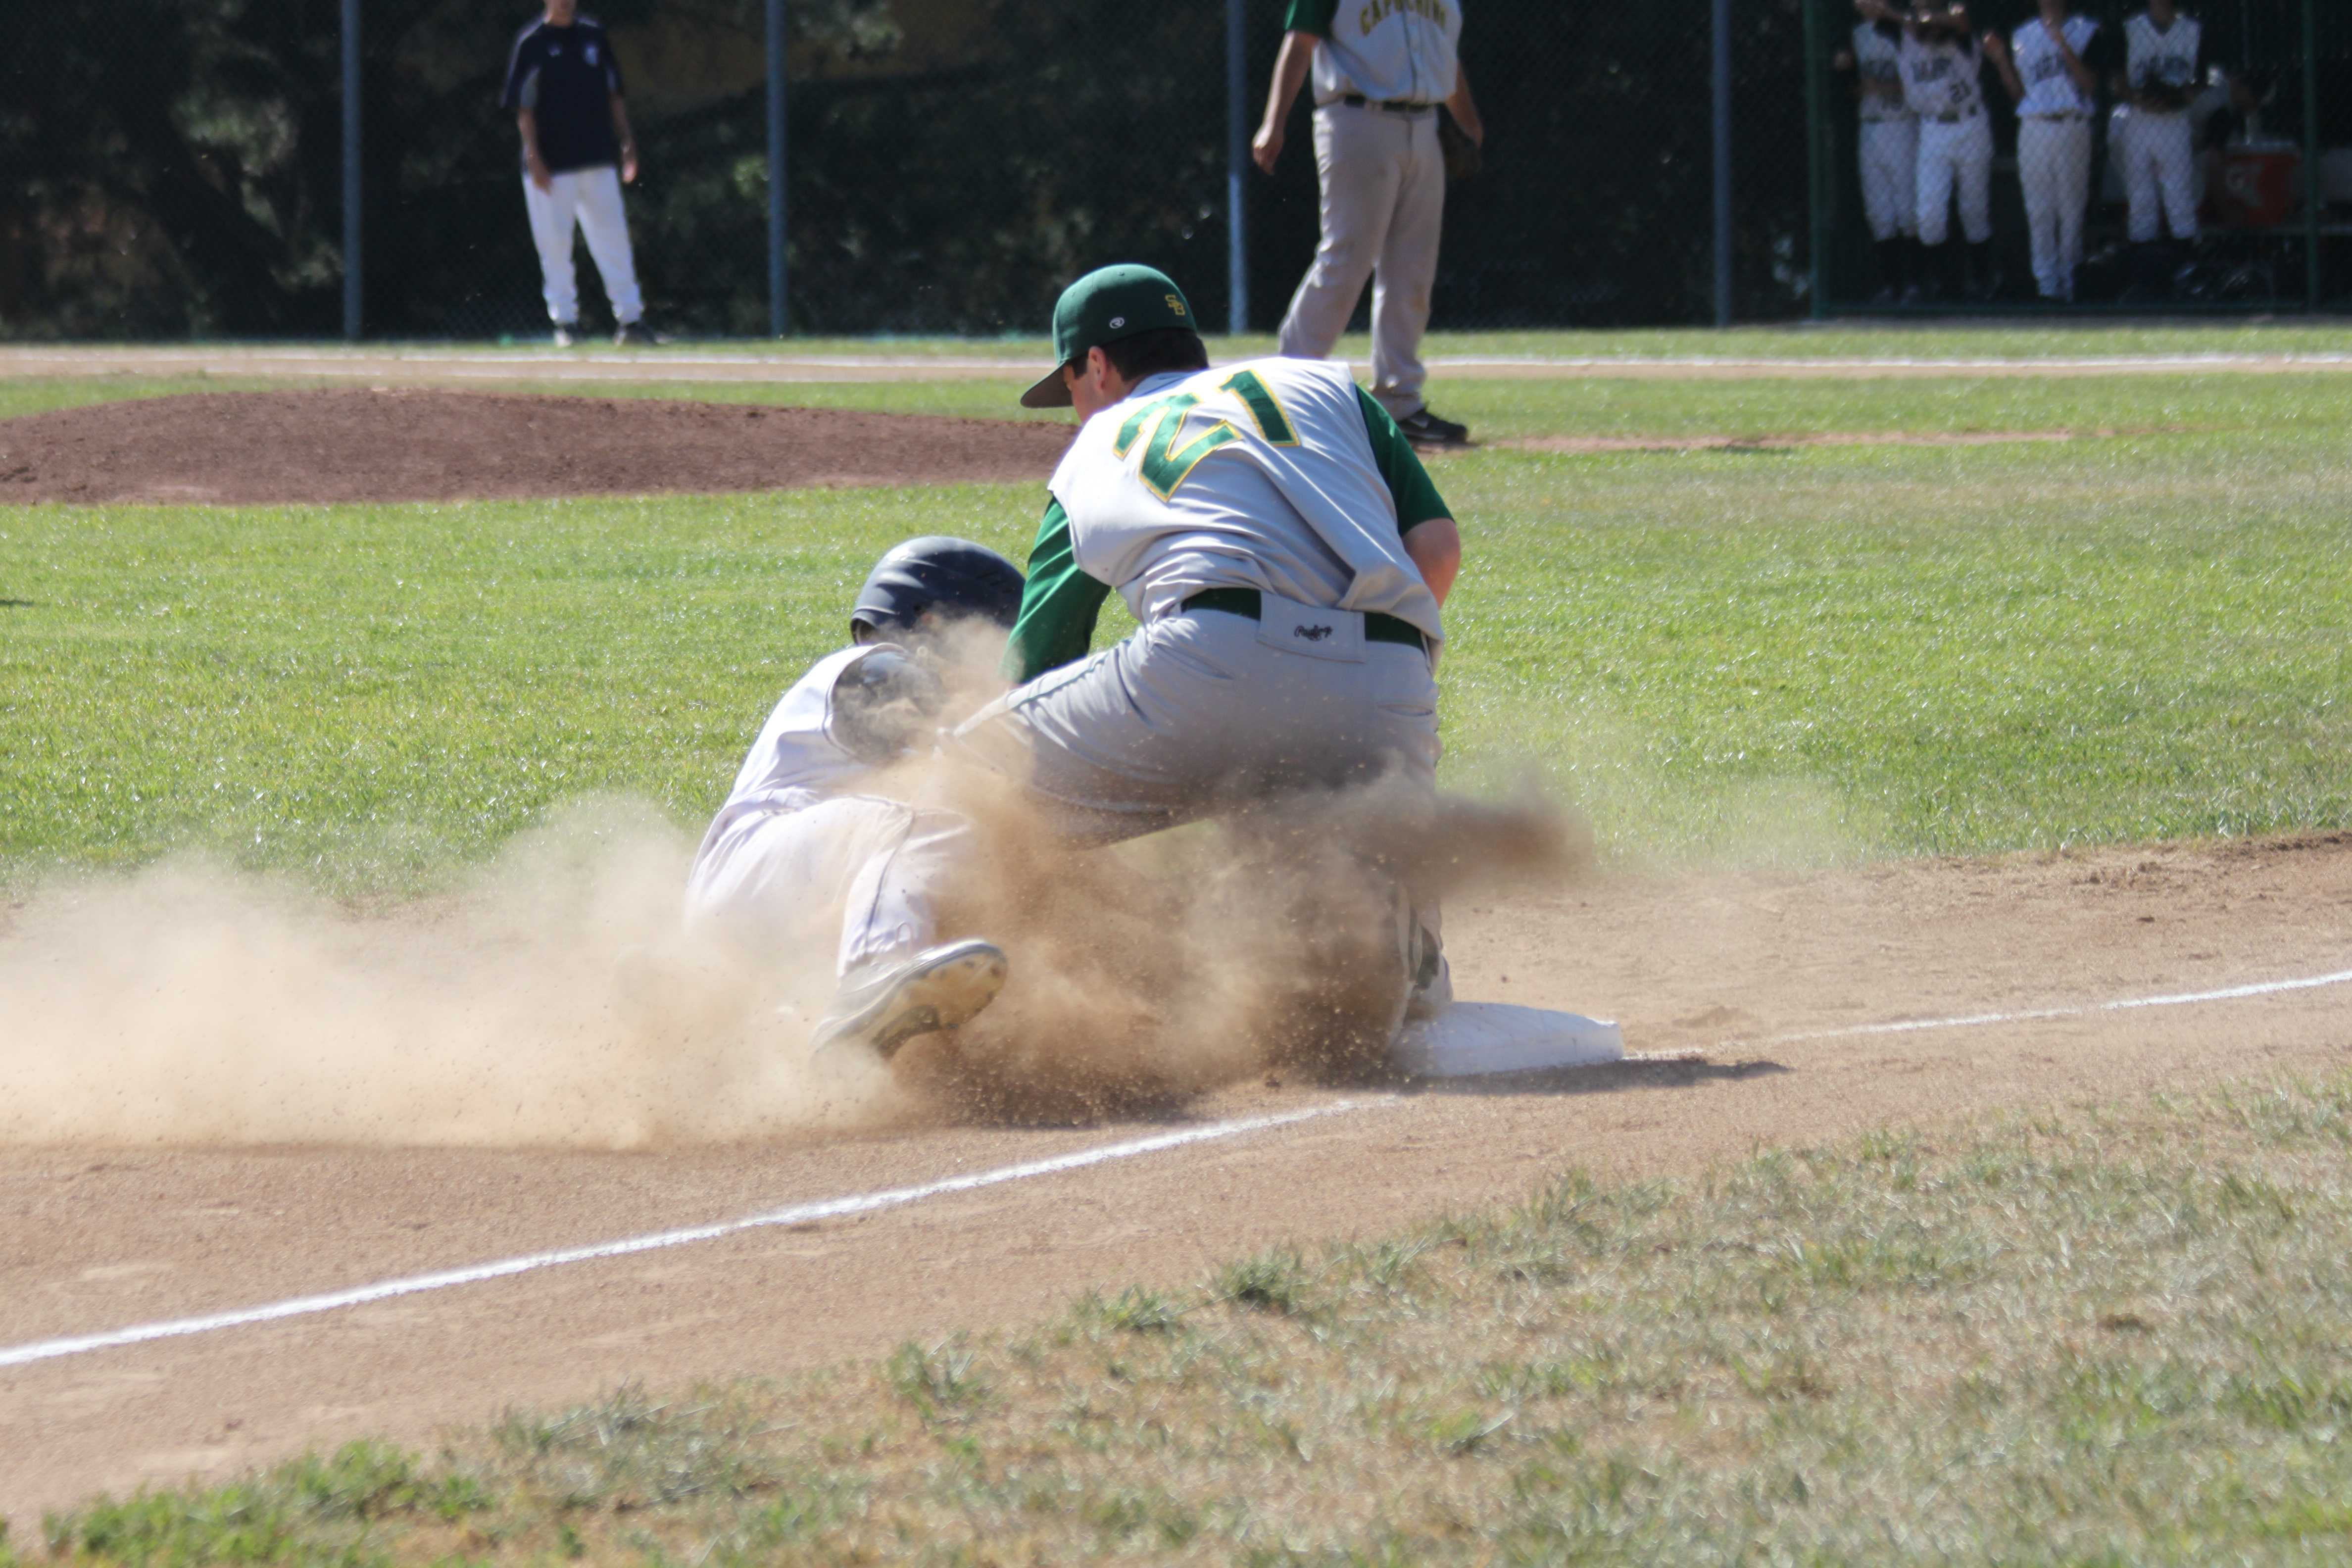 Nerve-racking game ends with close win for Scots baseball